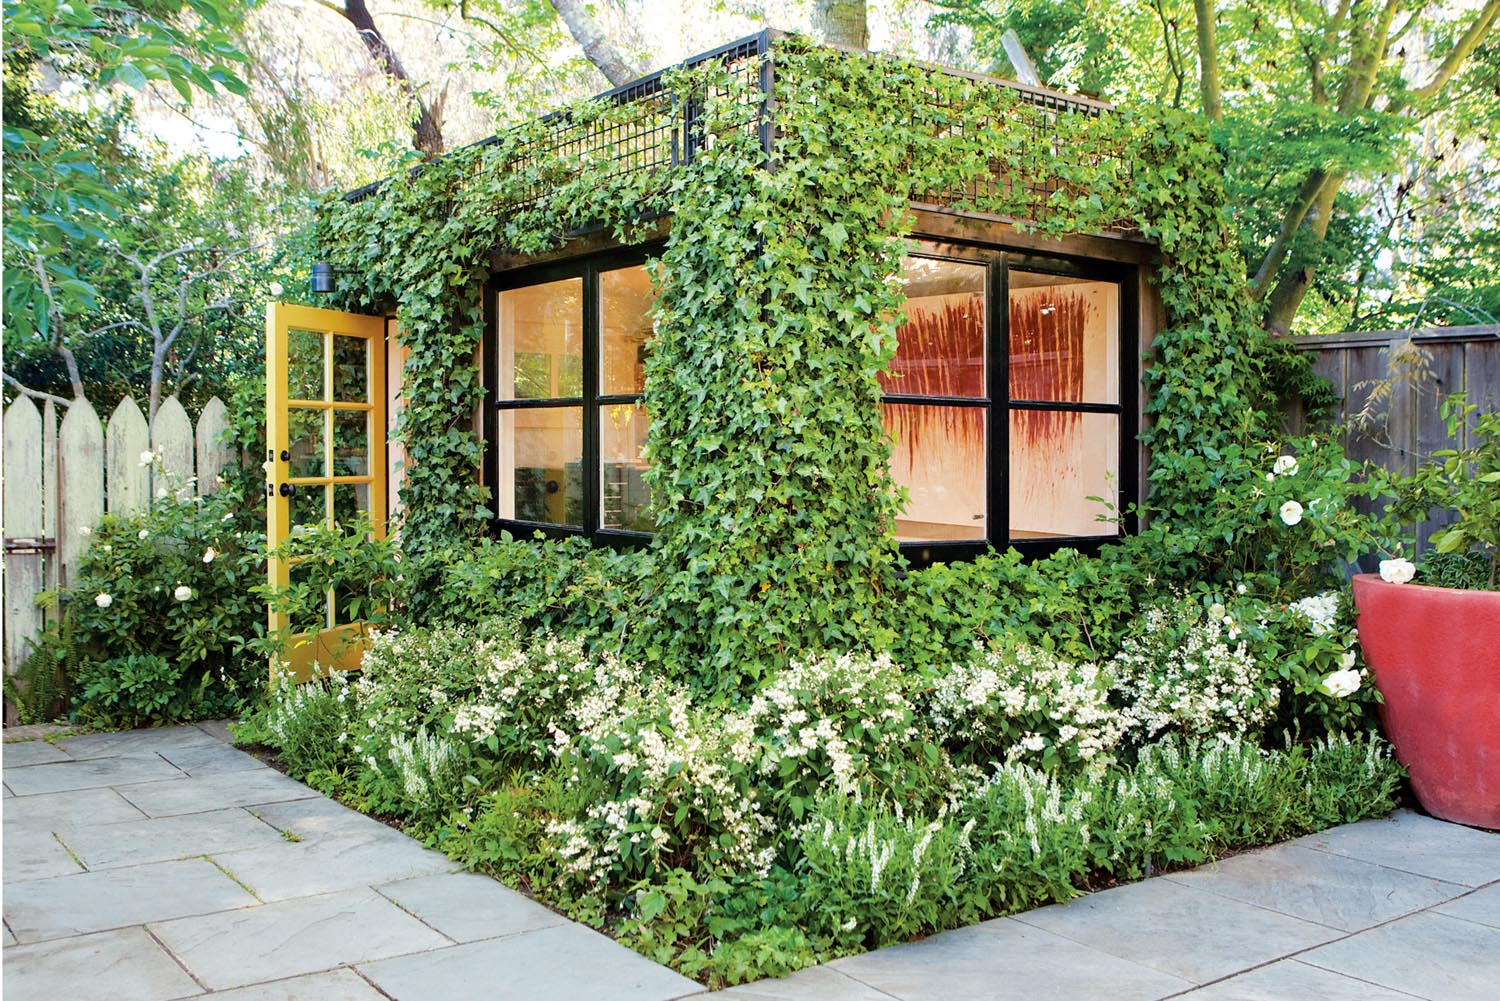 Office, studio or living room? Look to your garden - Scott Lewis Landscape Architecture outdoor room with ivy